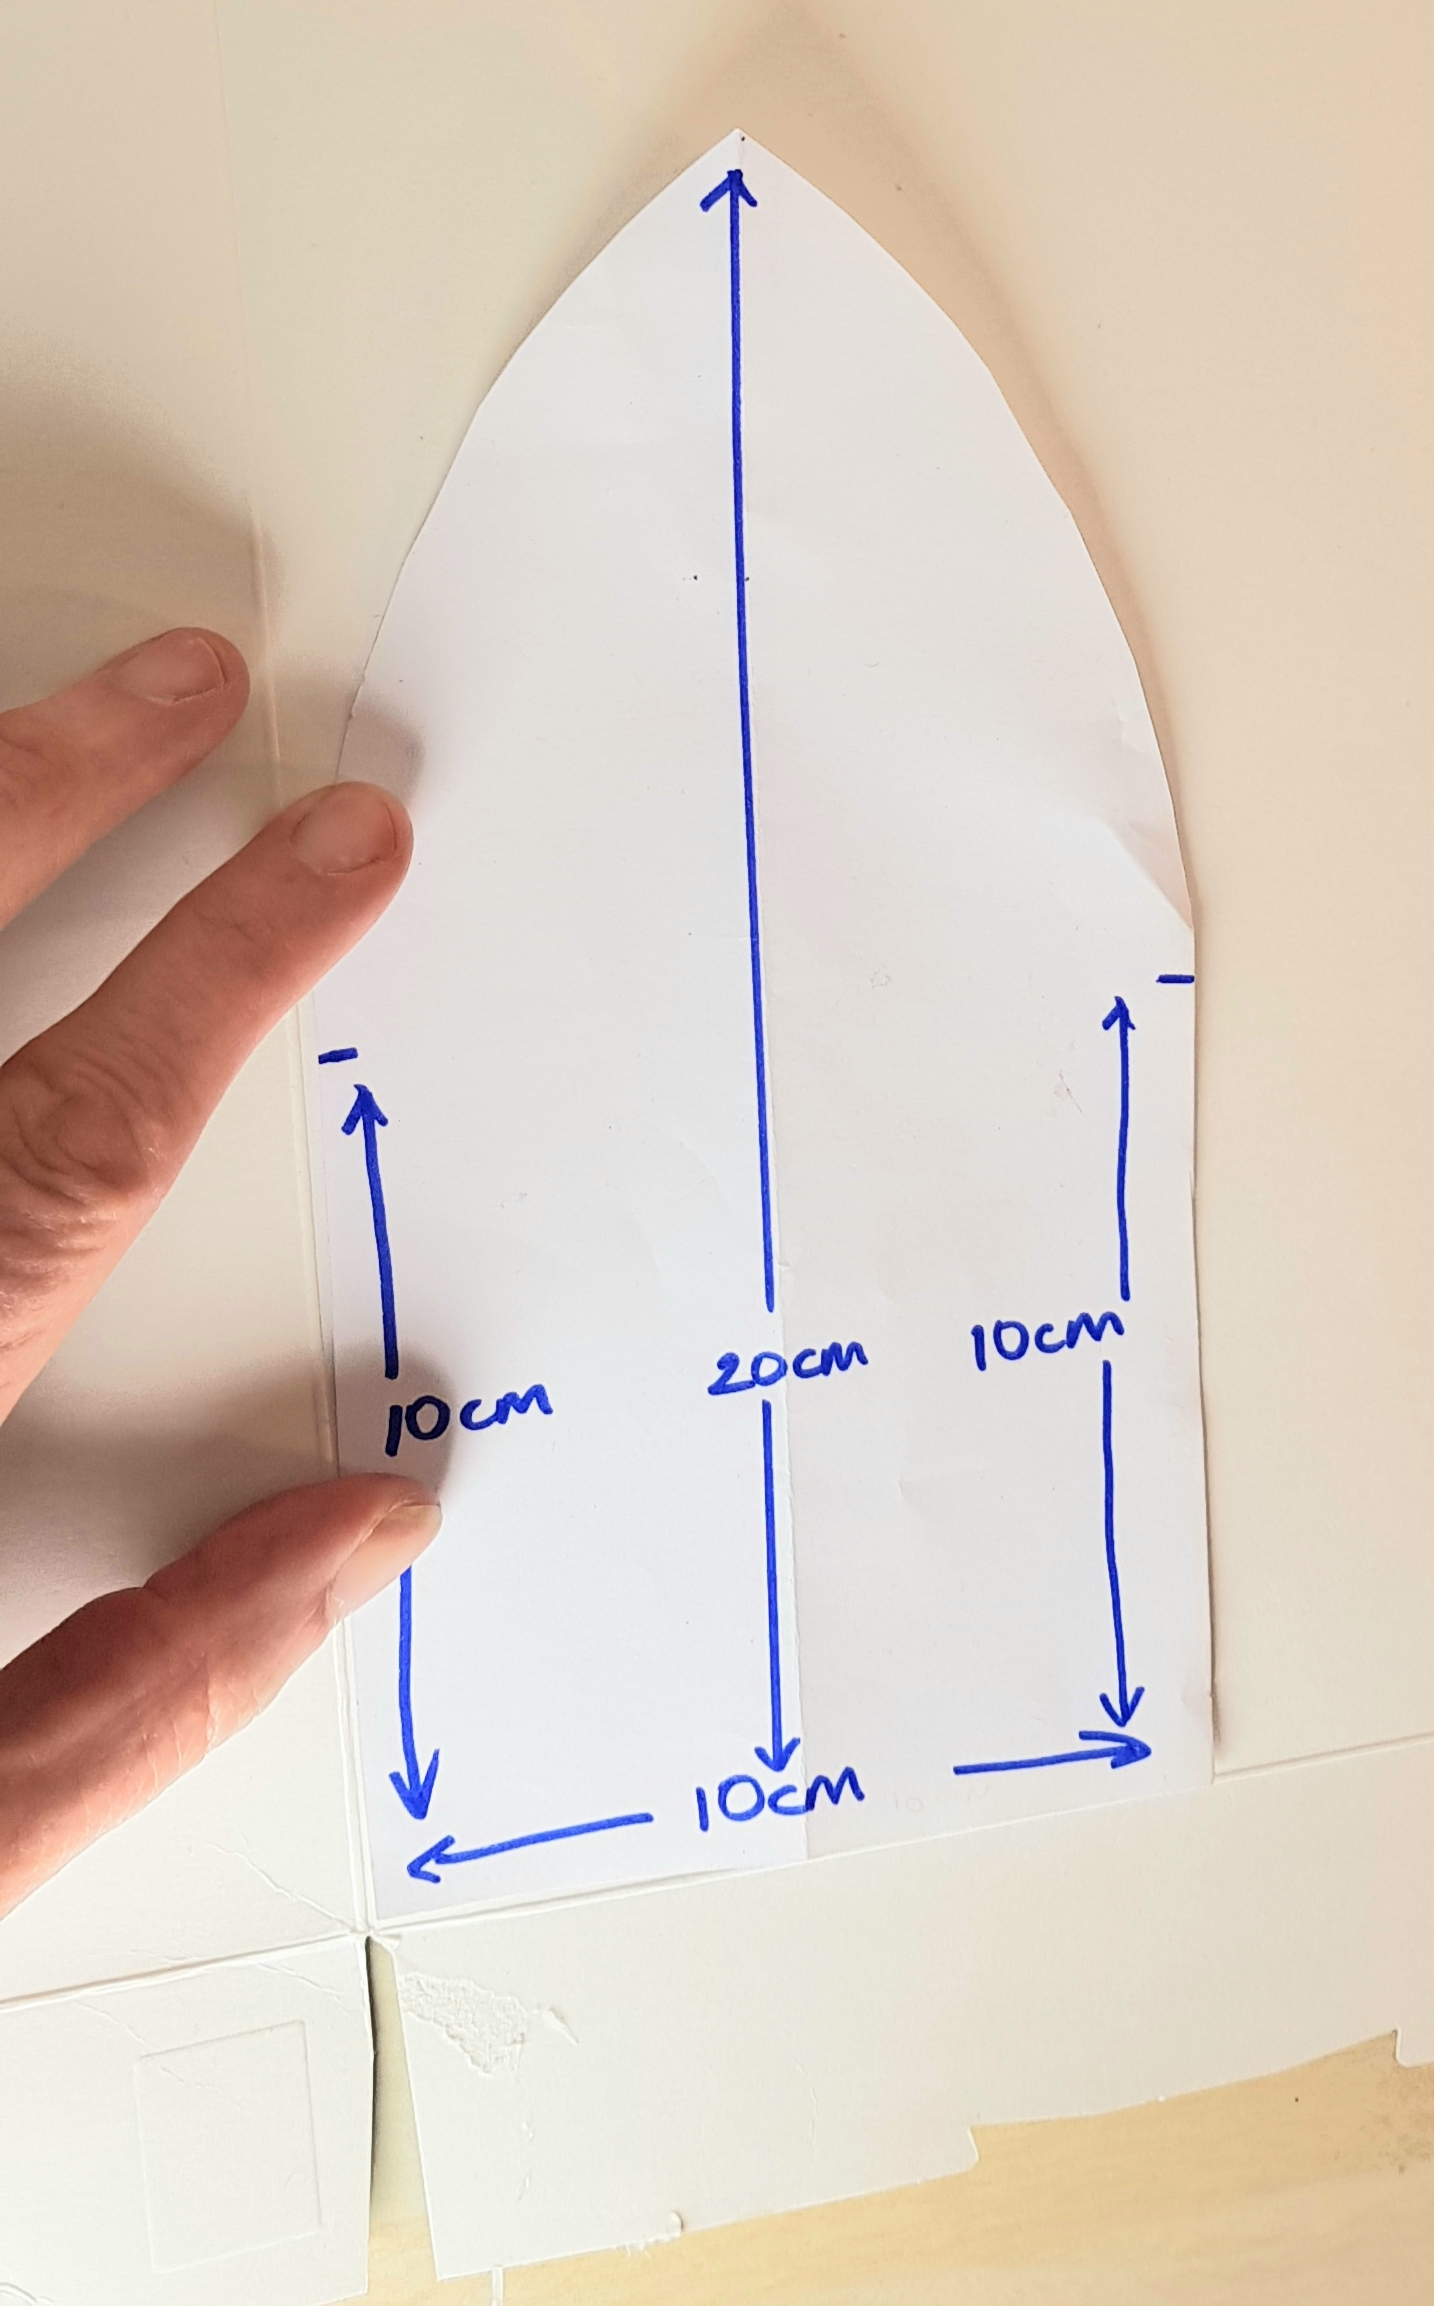 A template of a ship's shape is being used on cardboard to create a base for the craft. The template has measurements written on. 10cm across, 10cm of straight edges going up, and then curved edges to create a full height of 20cm.